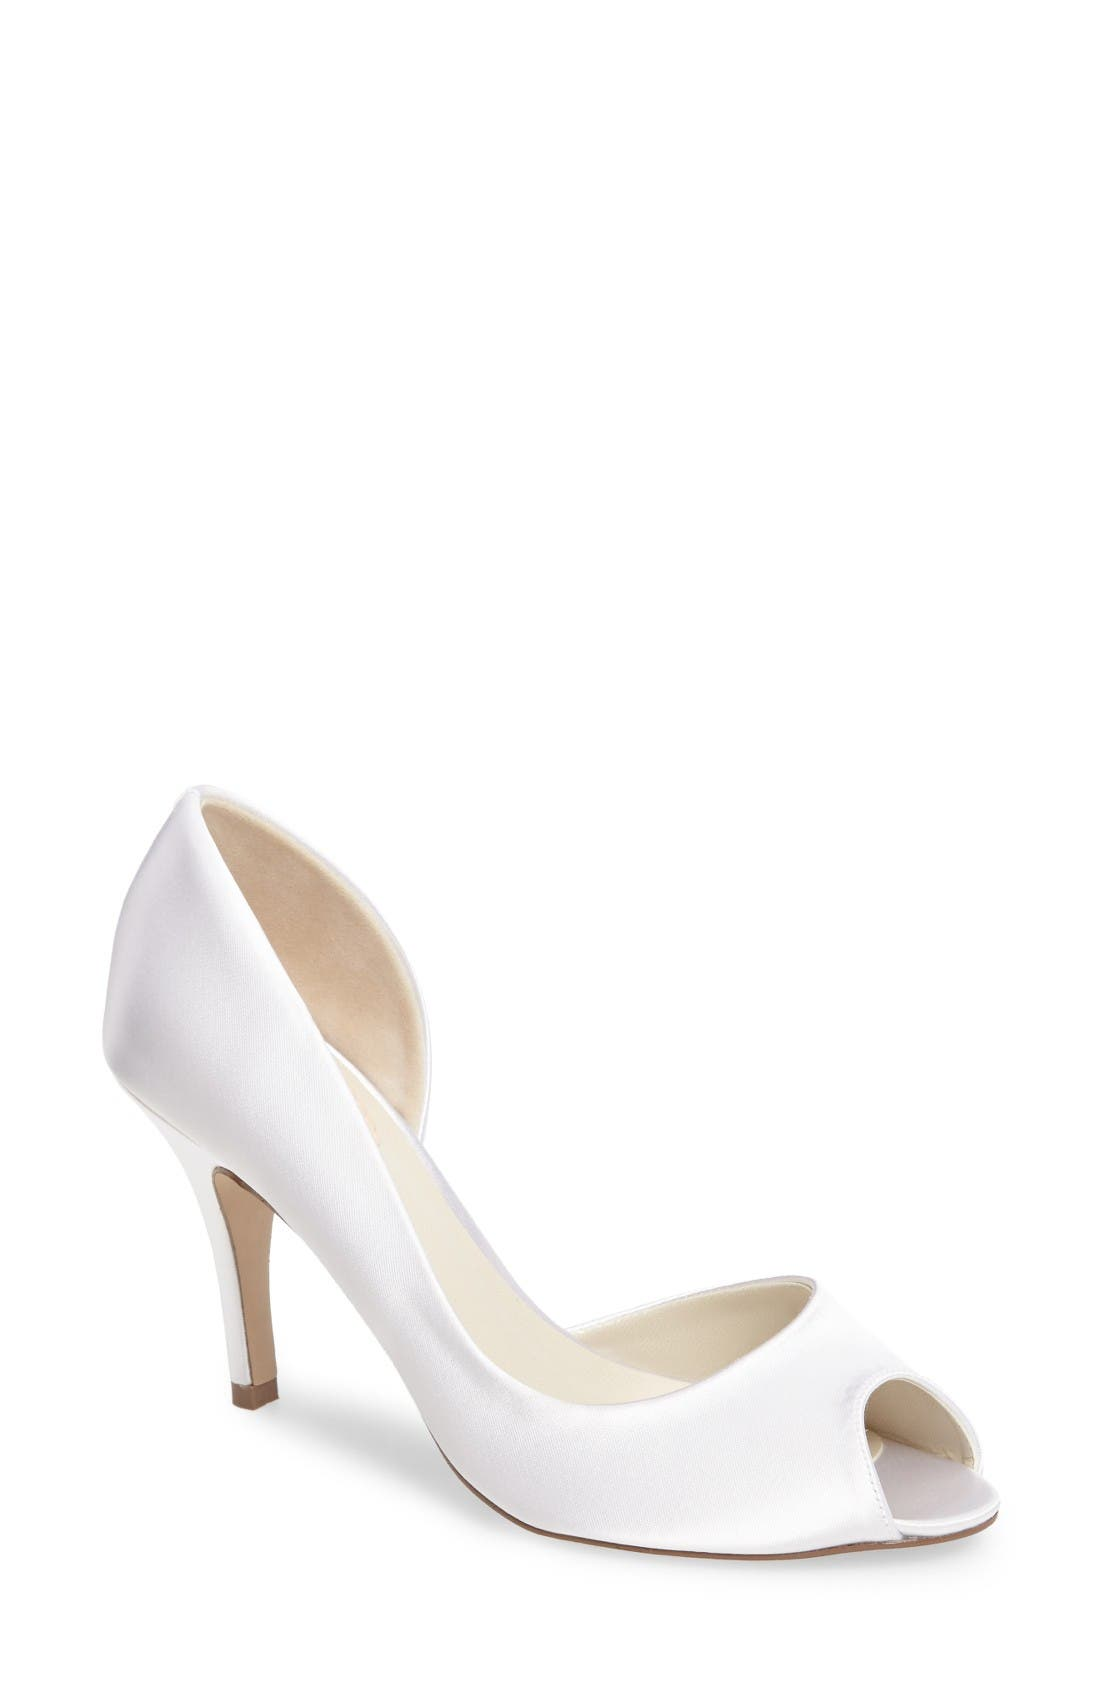 pink paradox london Sunshine Half d'Orsay Pump (Women)